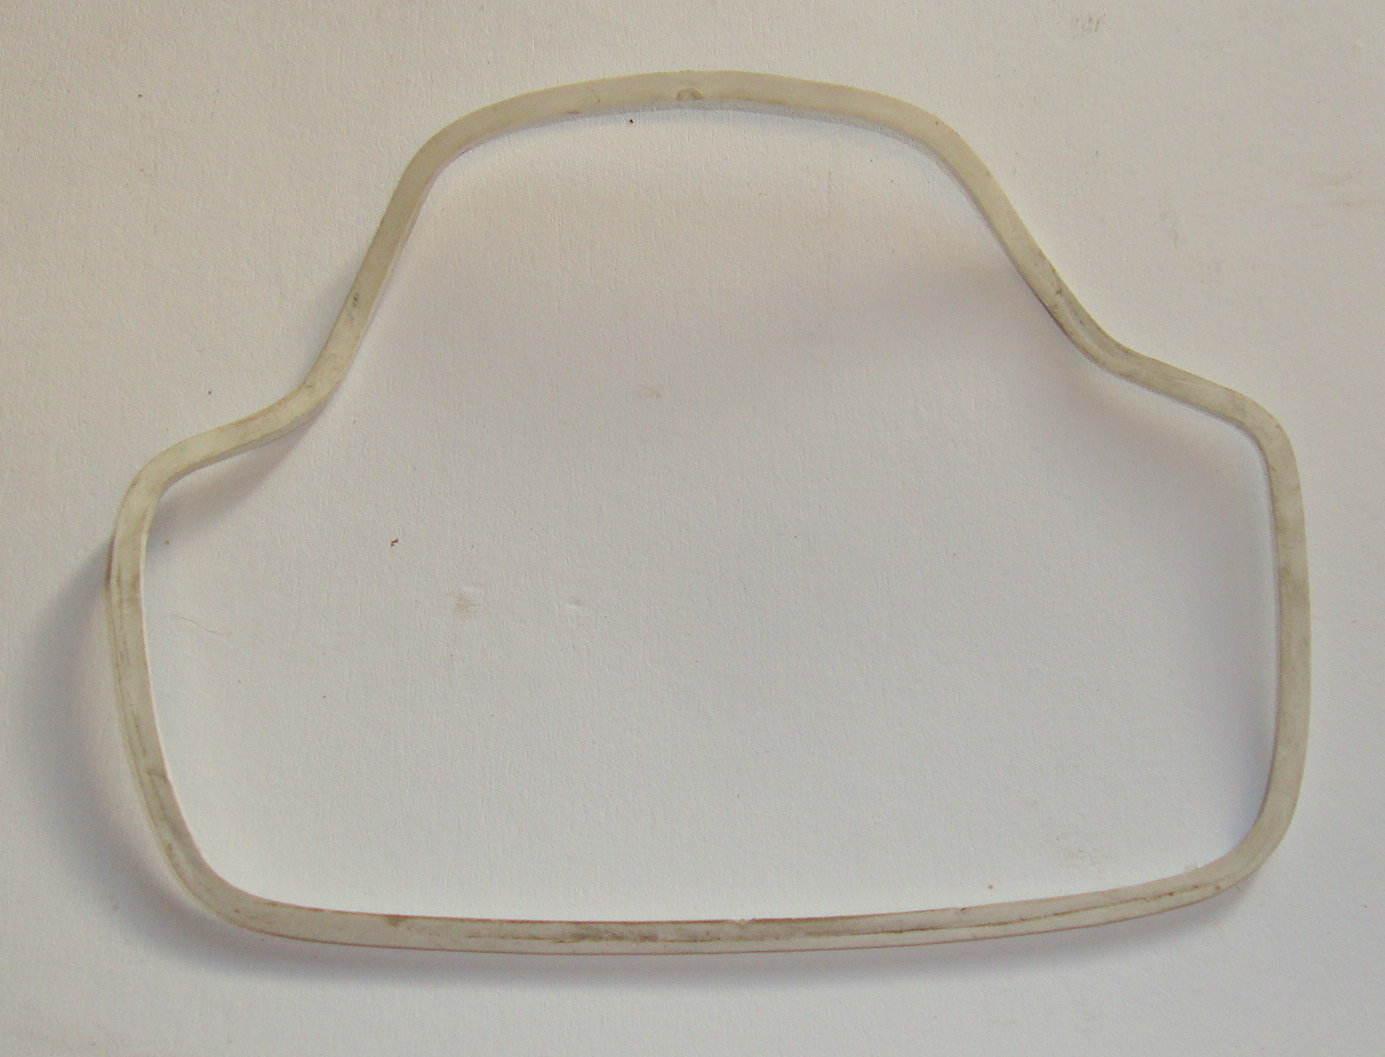 Gasket between glas and body, Vespa 125 / 150 / 180 SS